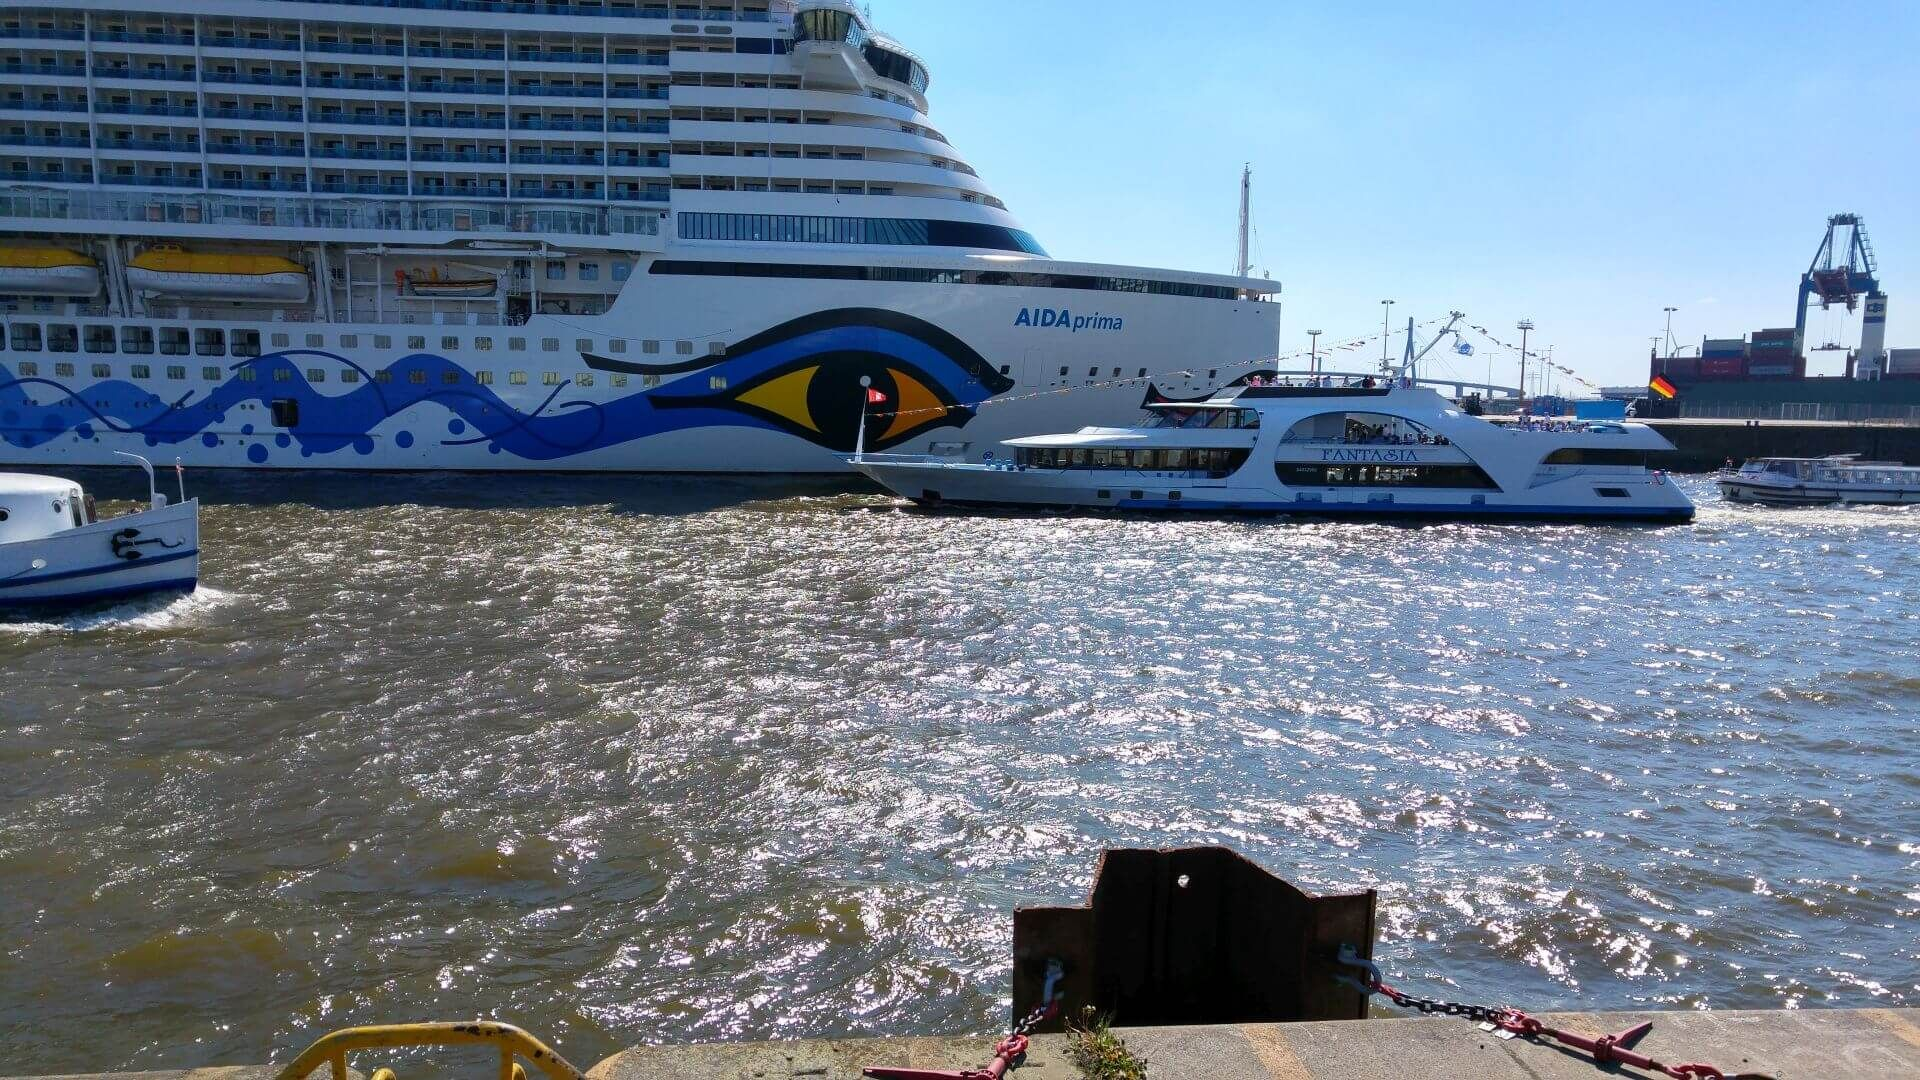 Fot: AIDA in Hamburg